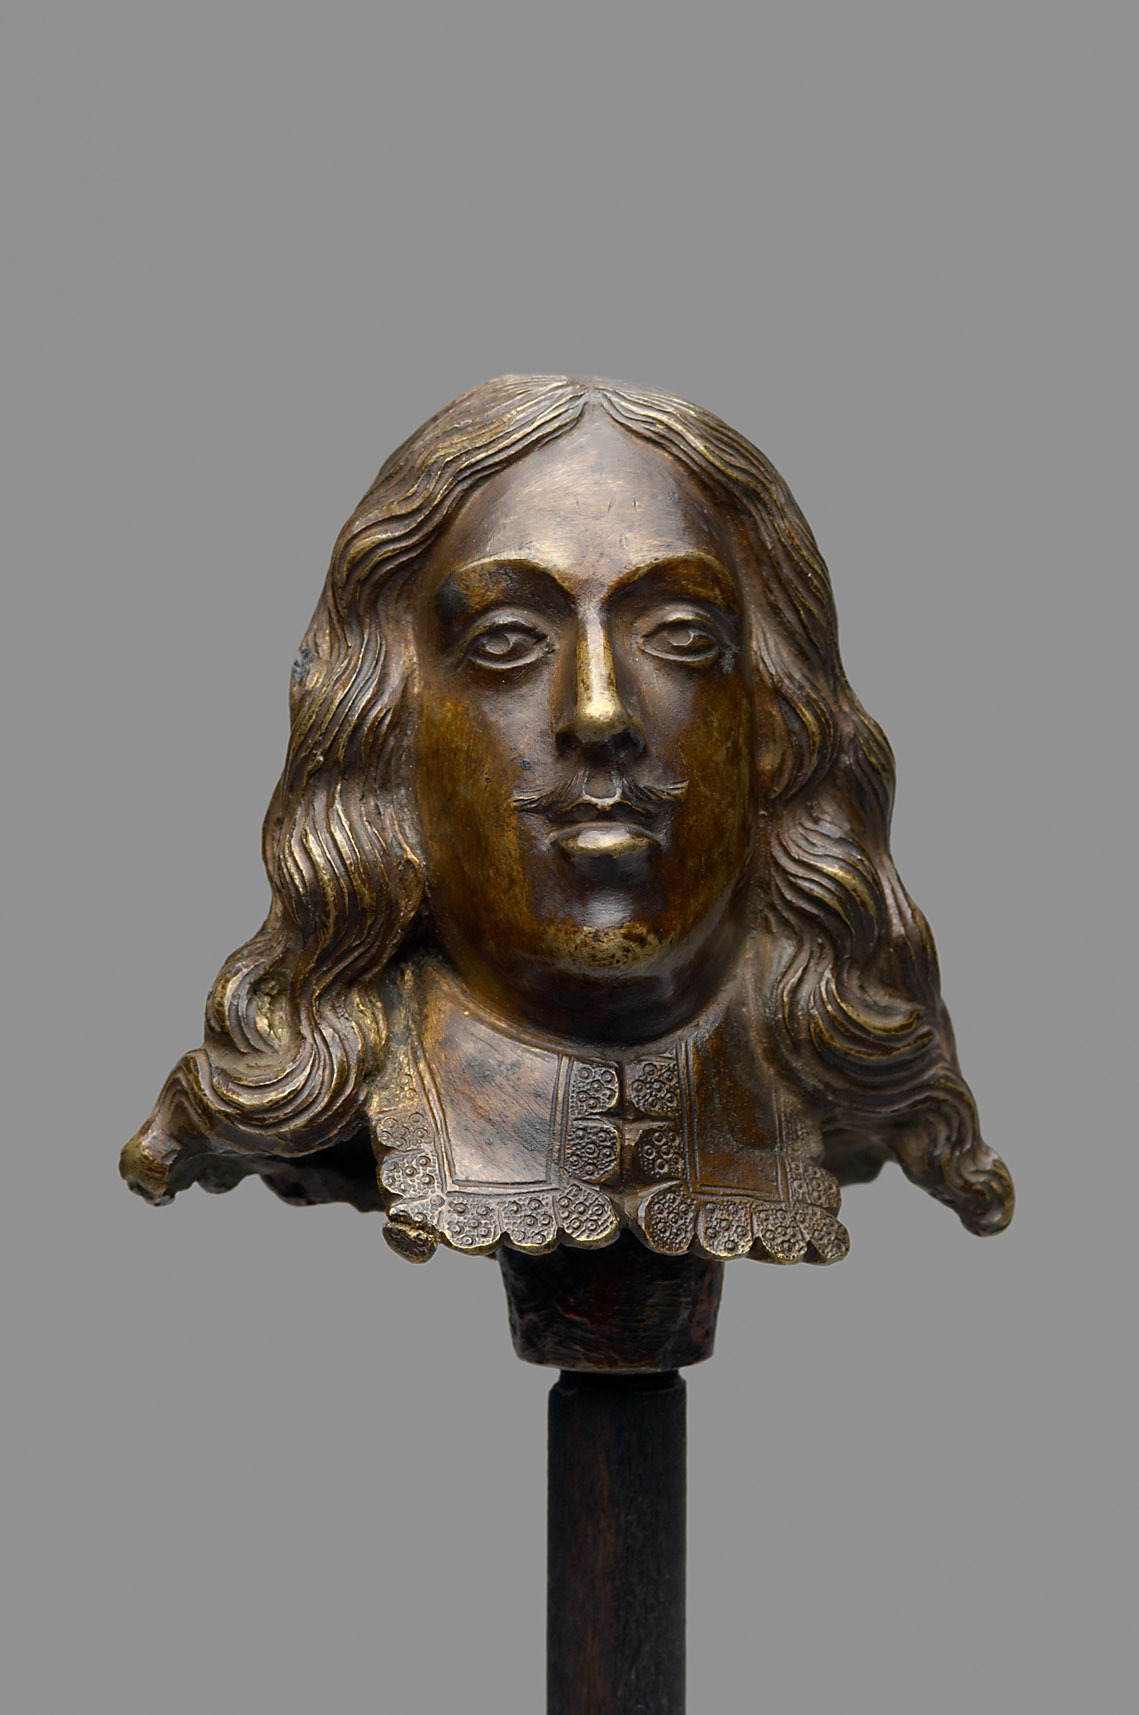 Replaceable head (Archduke Ferdinand Karl or Archduke Sigismund Franz), 2nd quarter of the 17th century, Caspar Gras